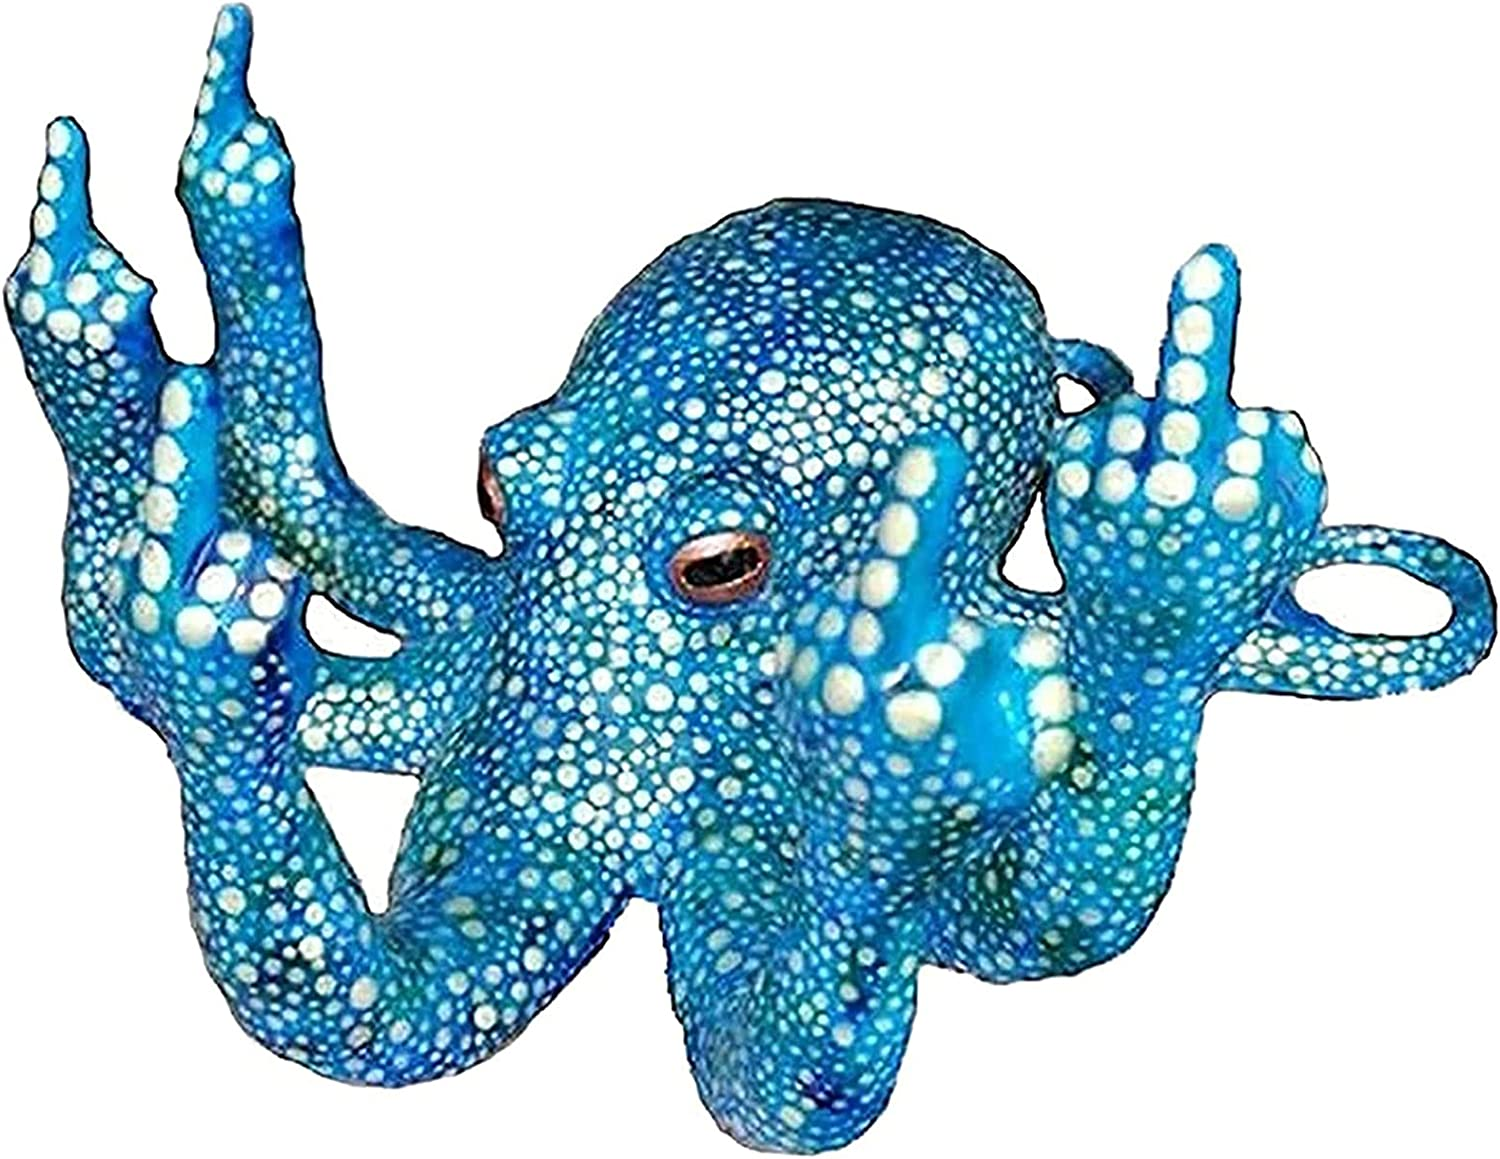 ETEERNVITY Octopus with Mother of Pearl - Multiple Color, Luminous Octopus with Middle Finger, Glow in The Dark Octopus for Home Decoration, Simulation Sea Life Toys (Blue)